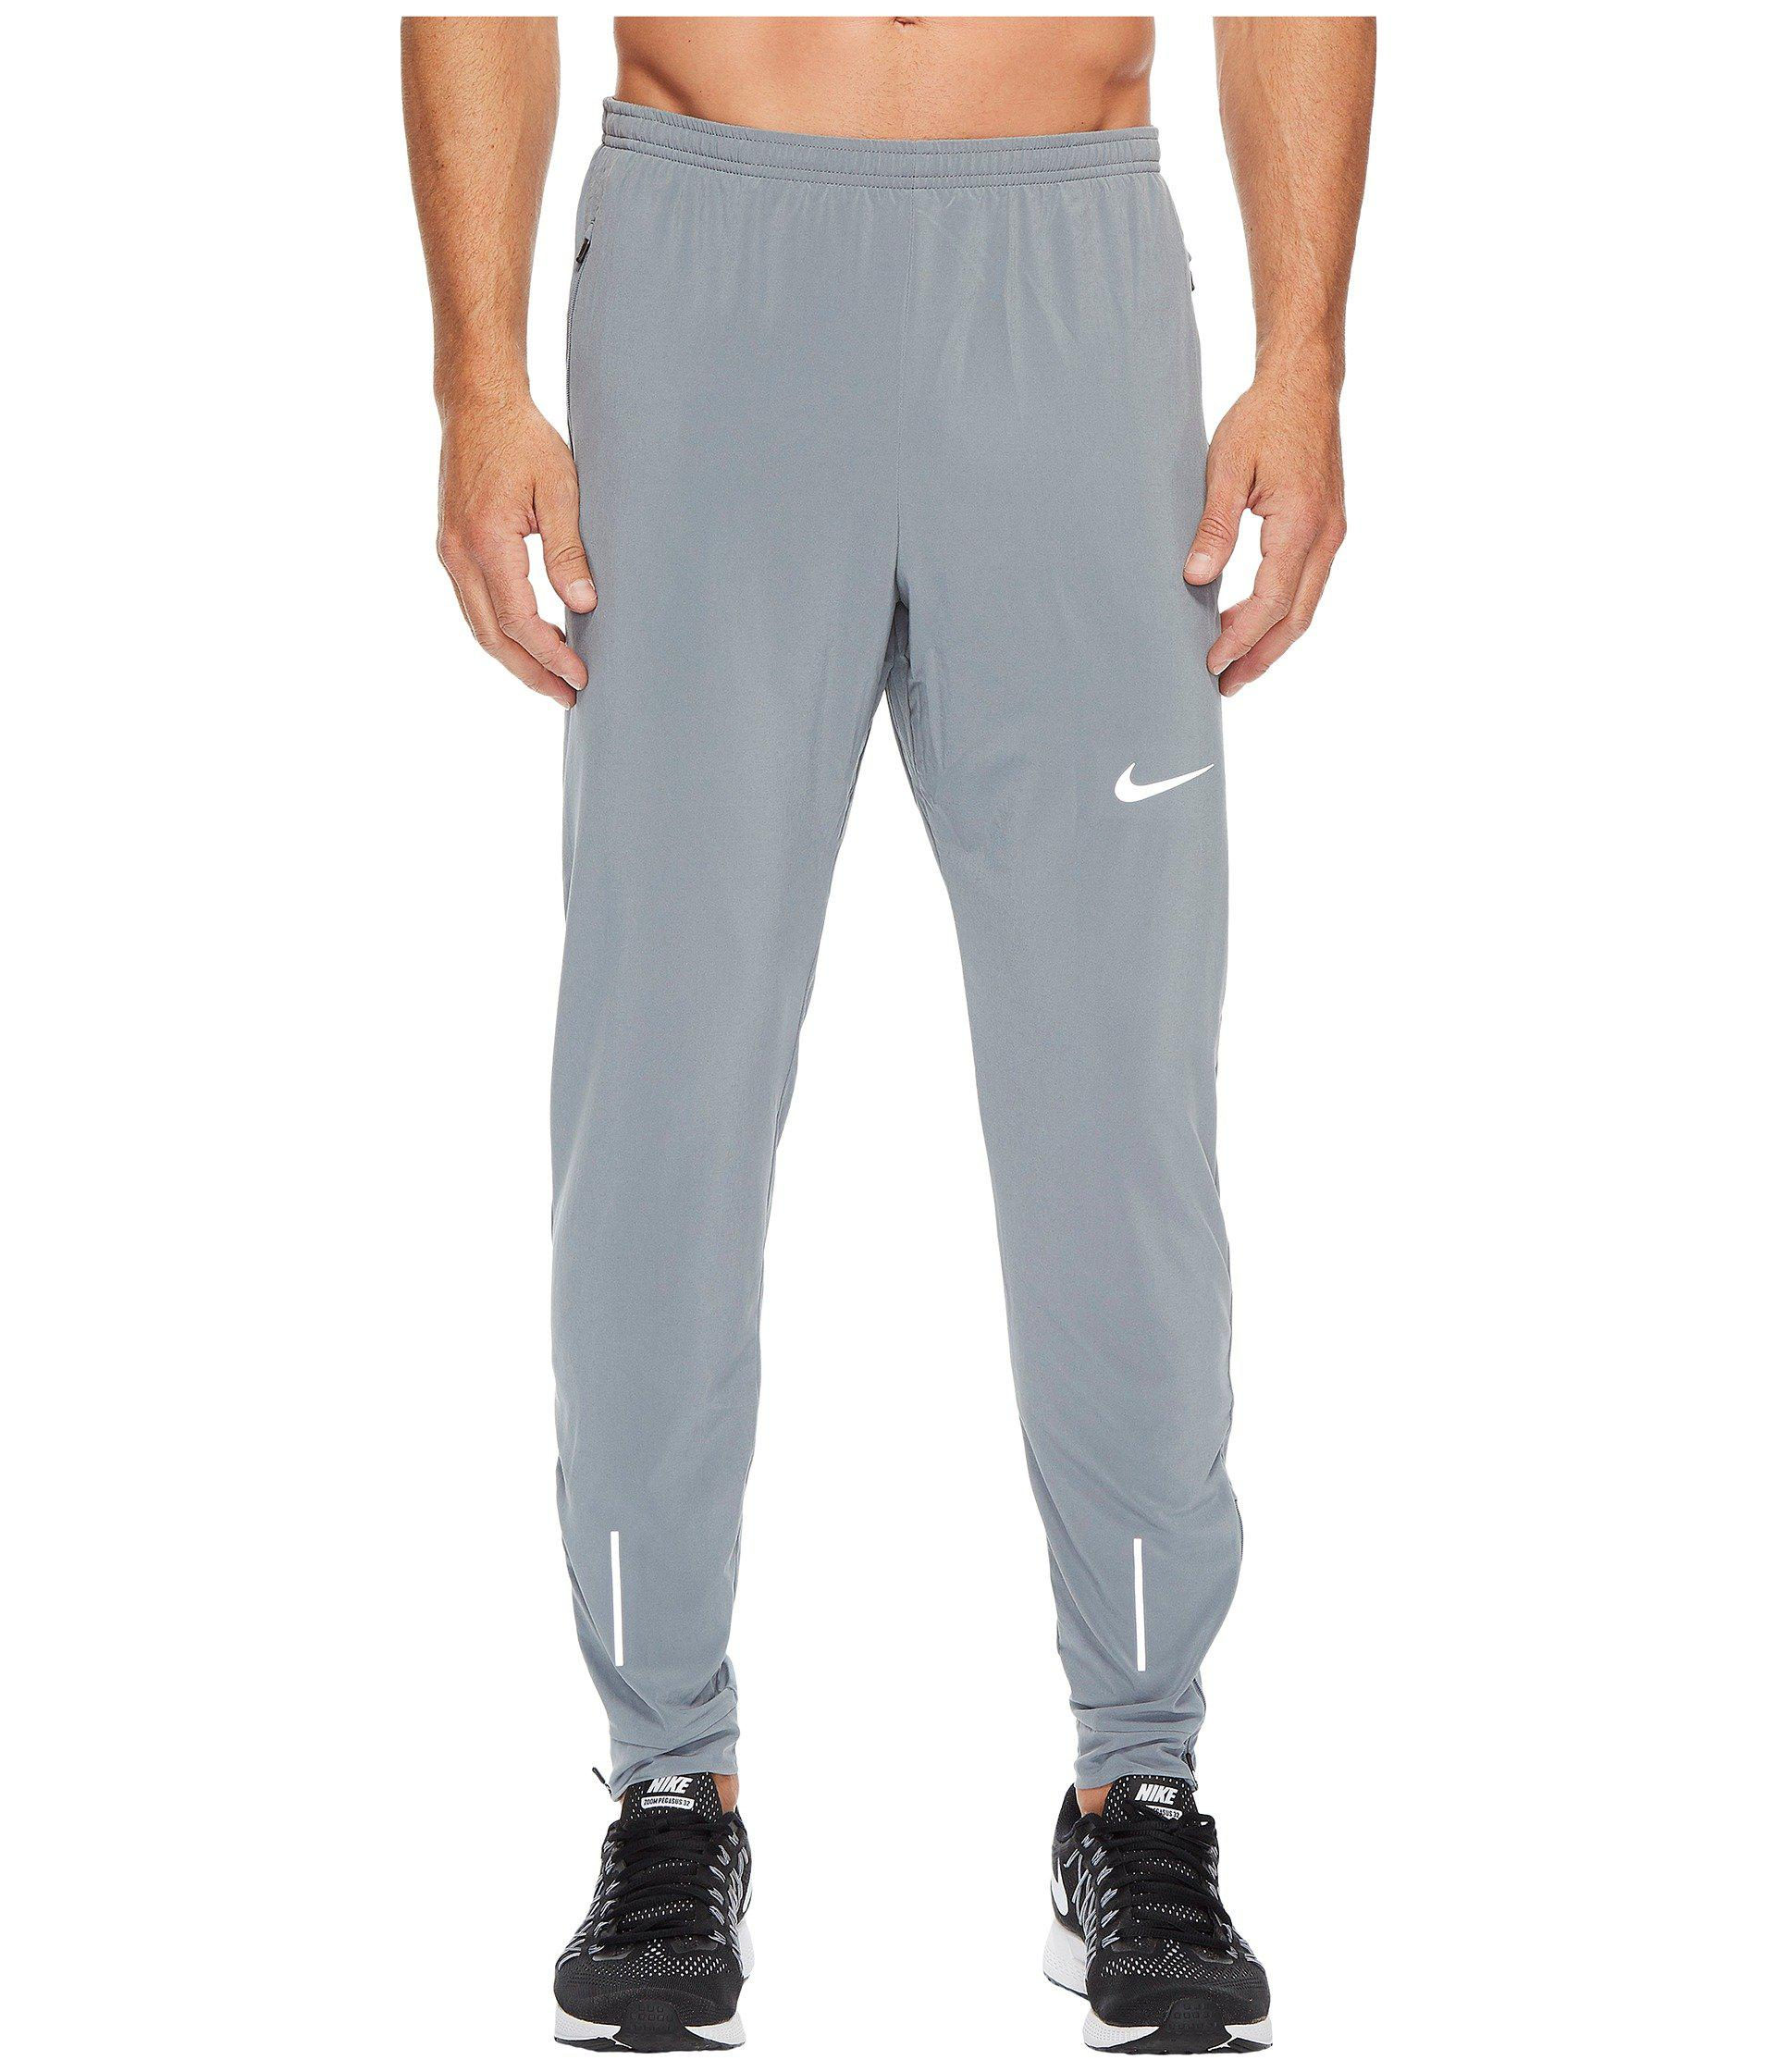 94f825211a13 Lyst - Nike Flex Essential Running Pant in Gray for Men